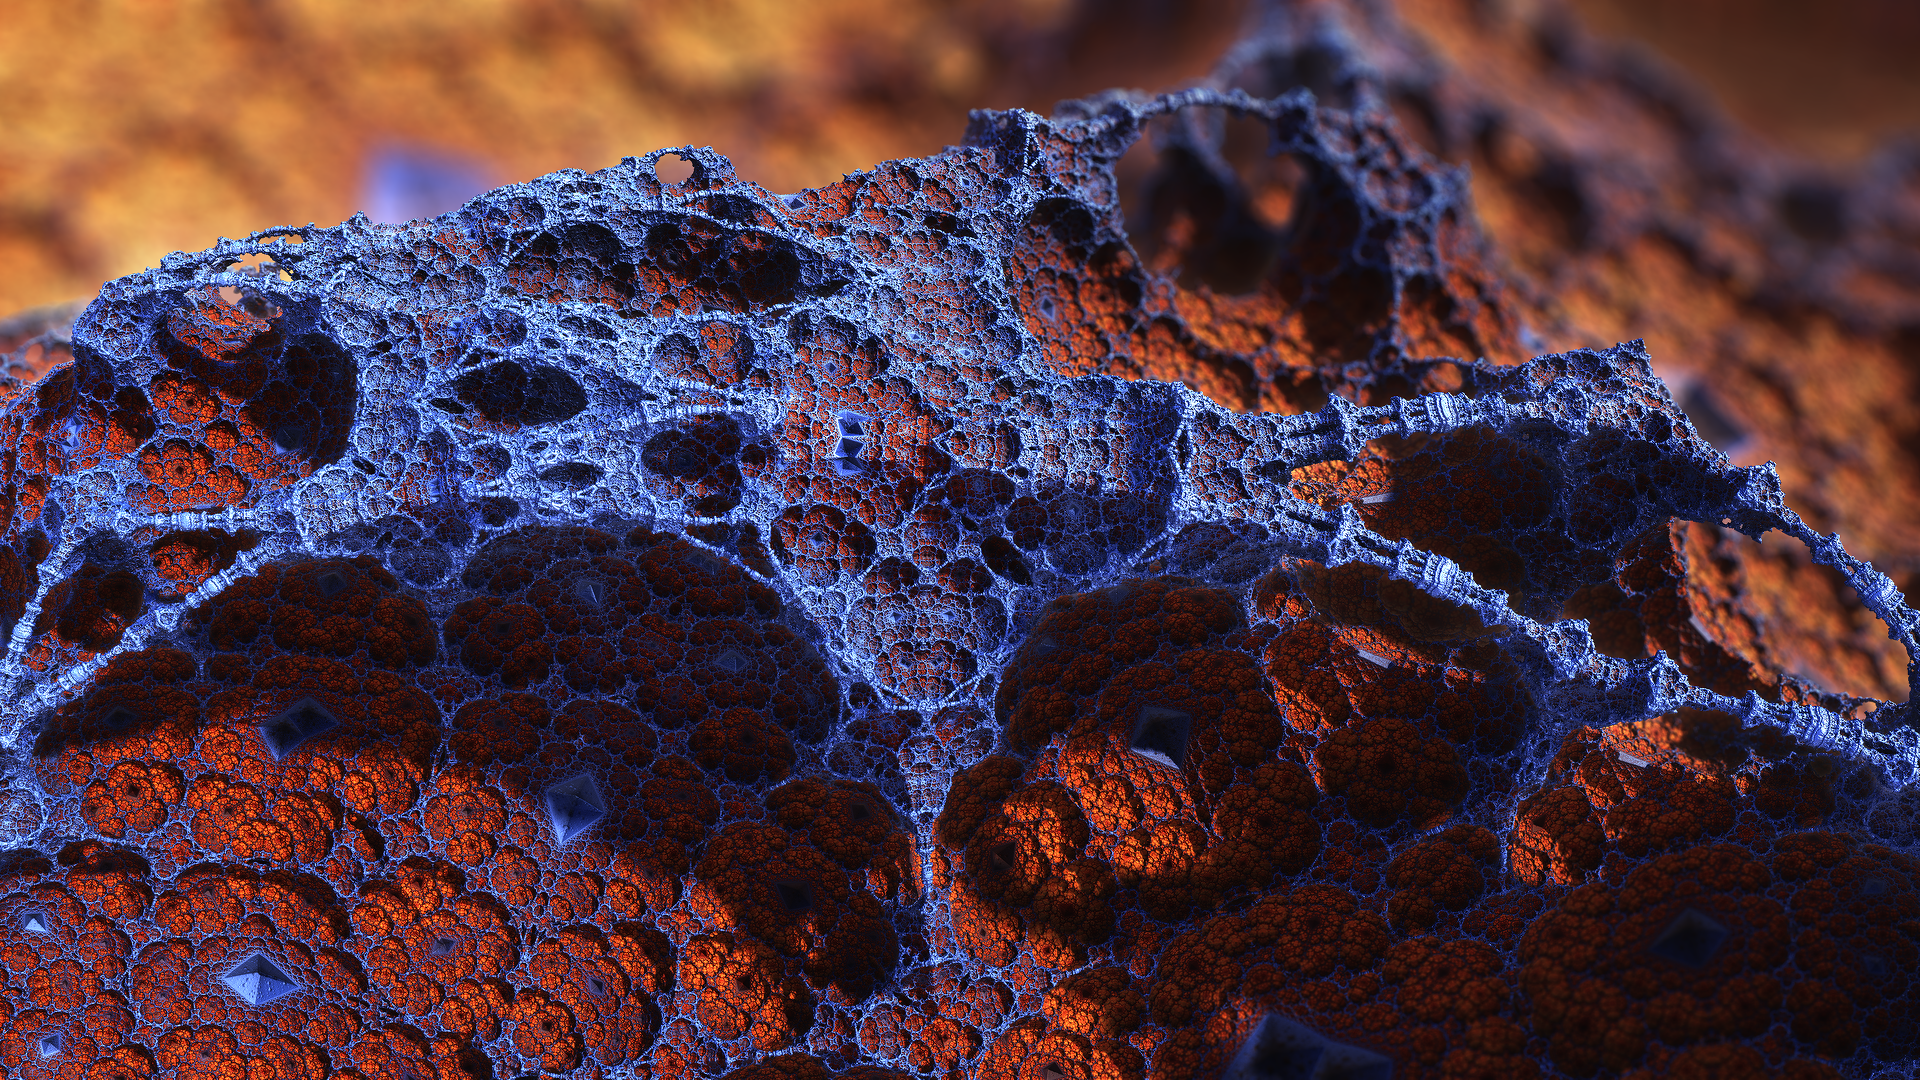 3d Fractal Wallpapers High Definition With Hd Wallpaper Resolution 1920x1080 Px 5 10 Mb Fractals Photo Manipulation Wallpaper